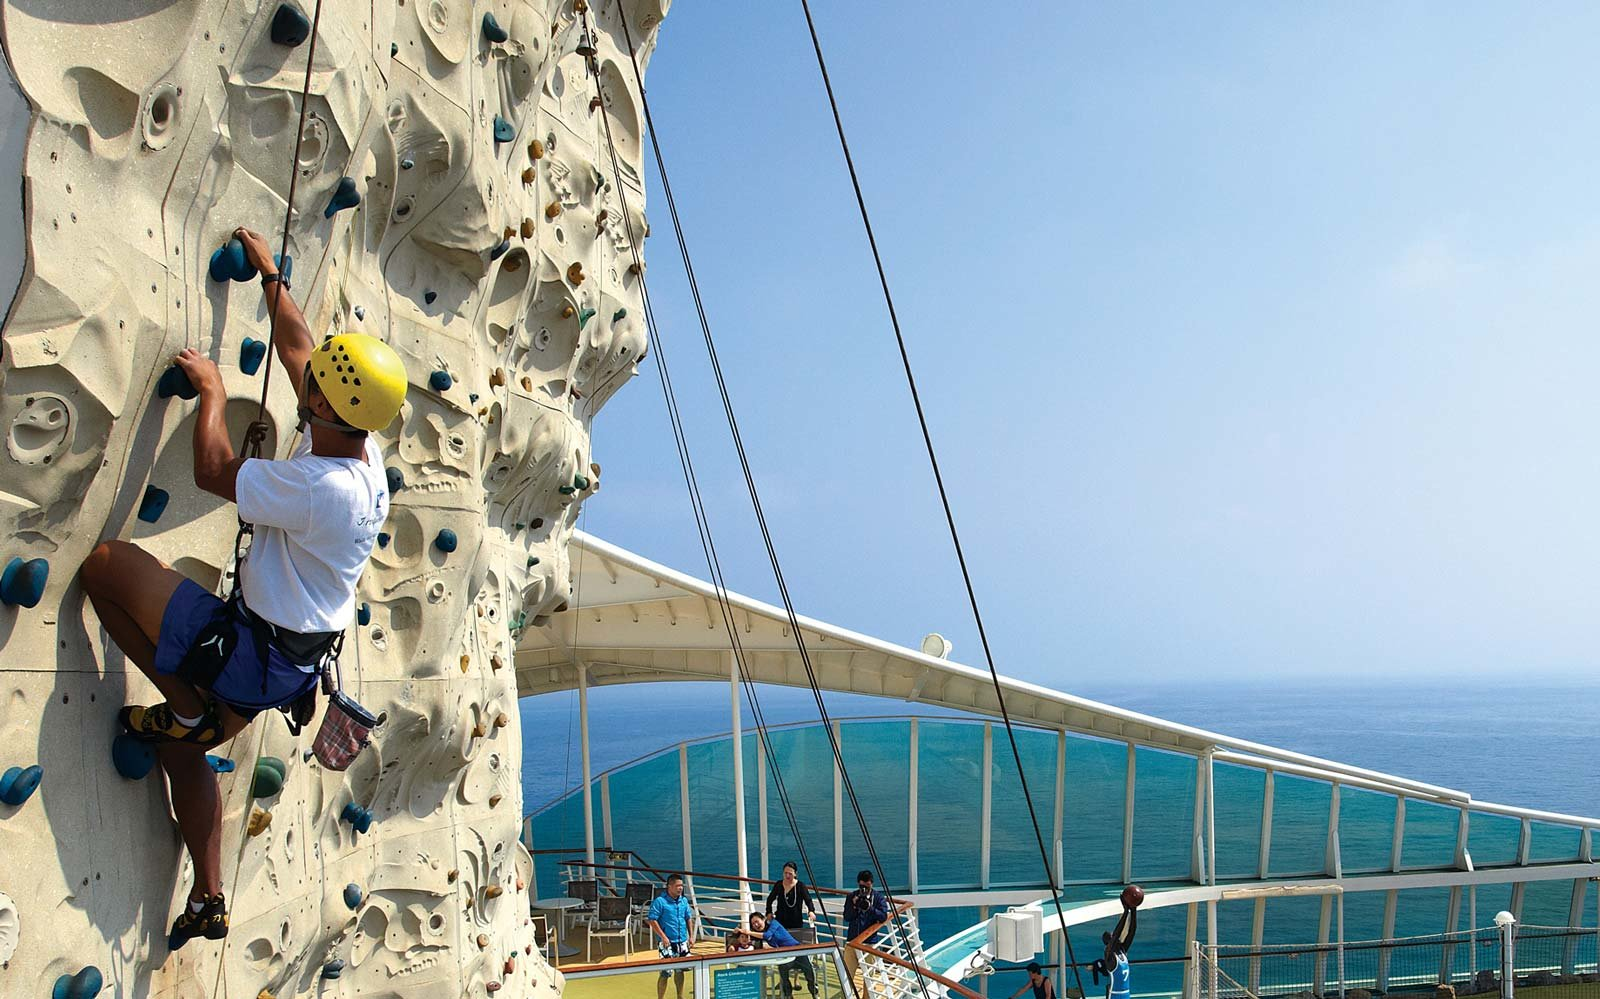 Five Things to Know About Royal Caribbean International's Majesty of the Seas Cruise Ship